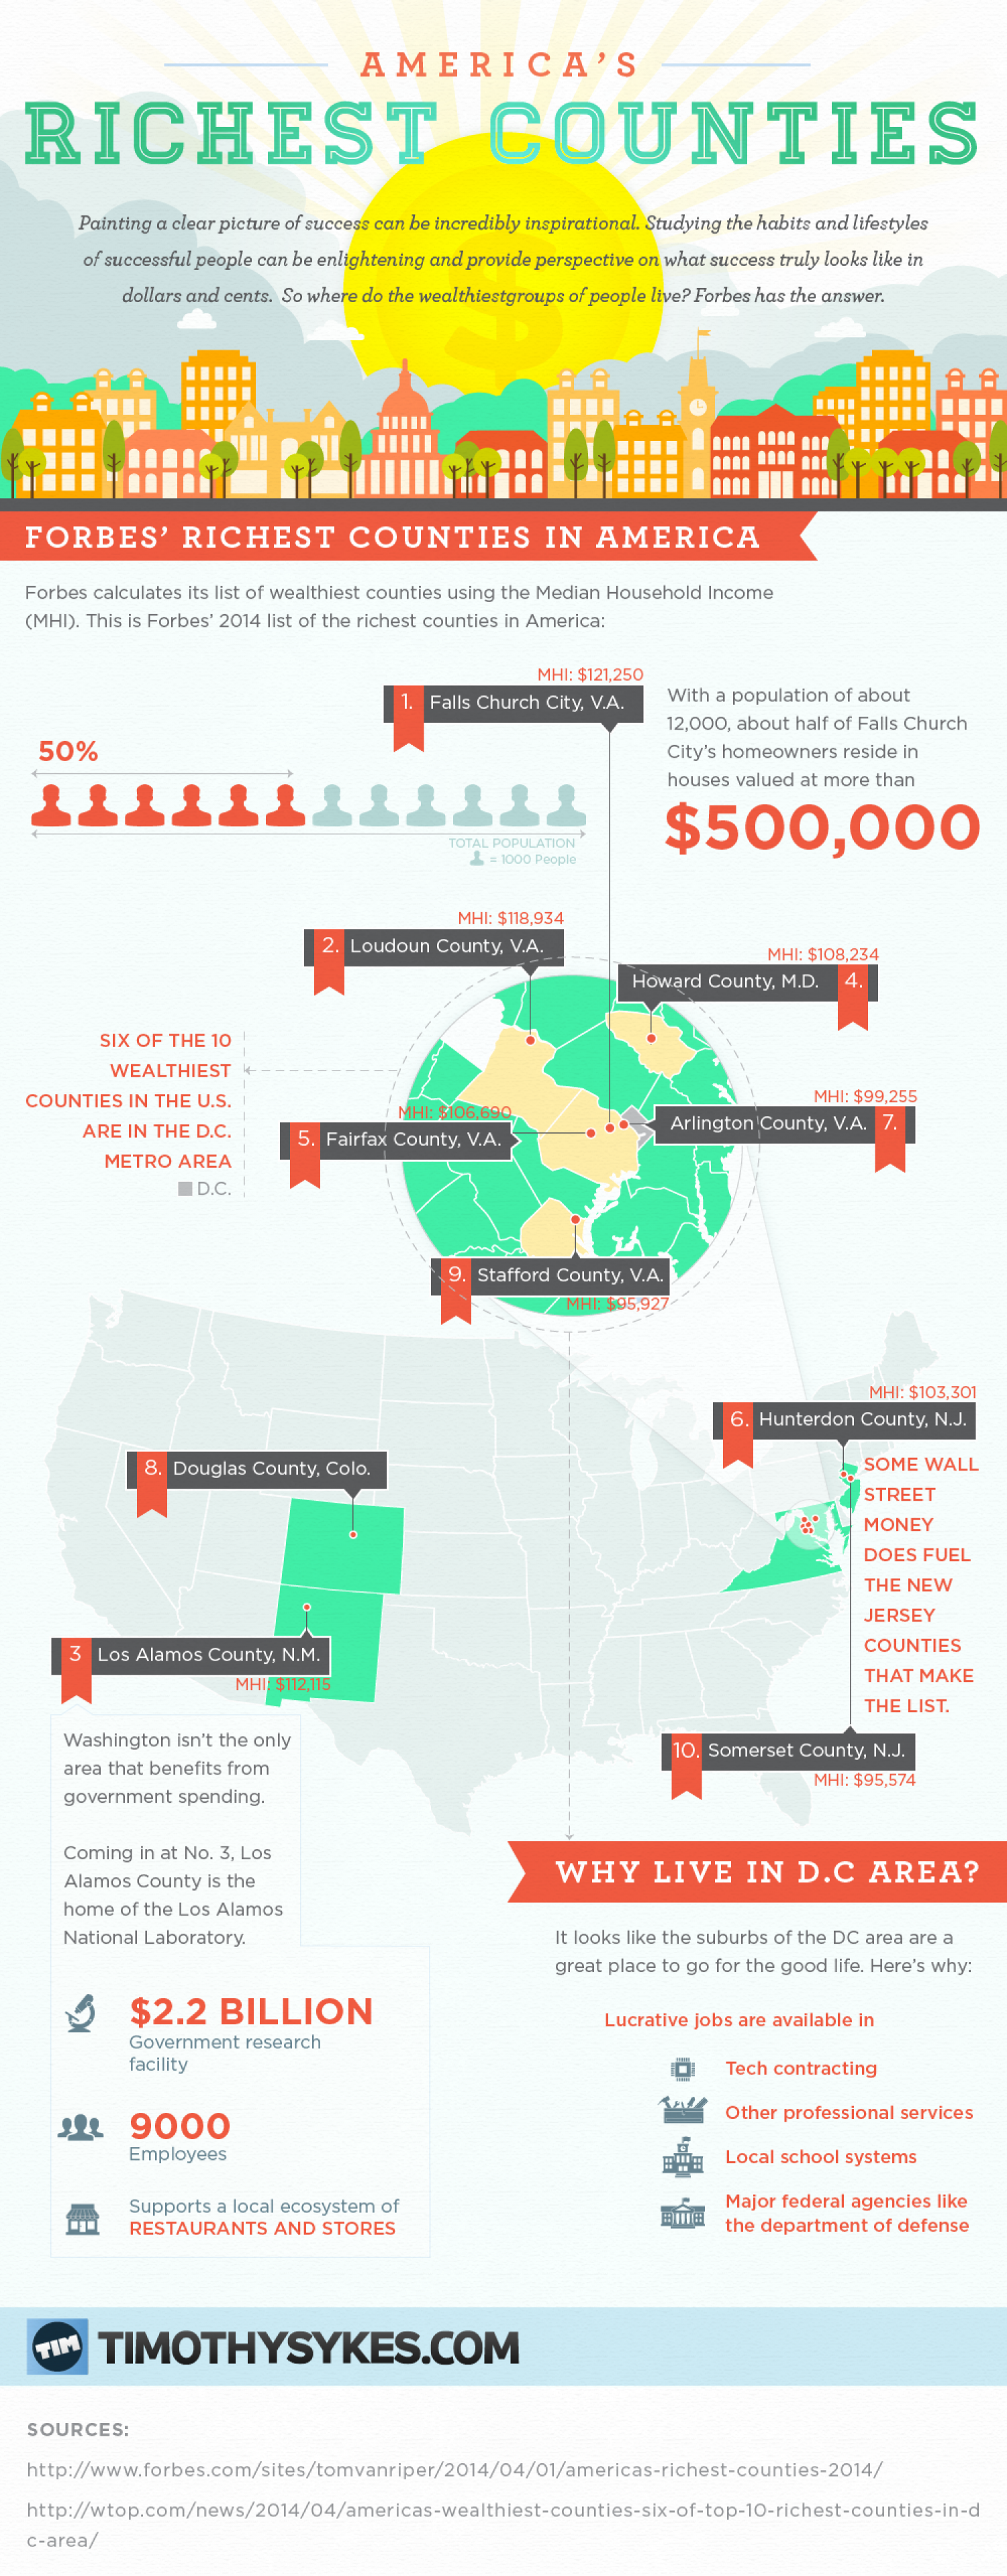 America's Richest Counties Infographic